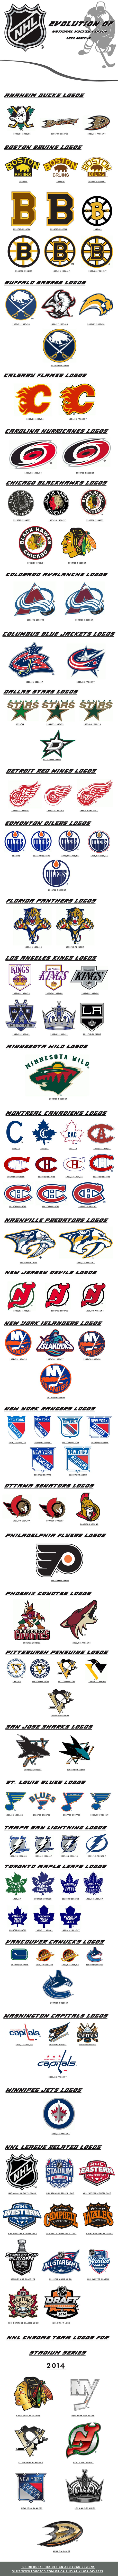 Infographic on the evolution of NHL team graphics.